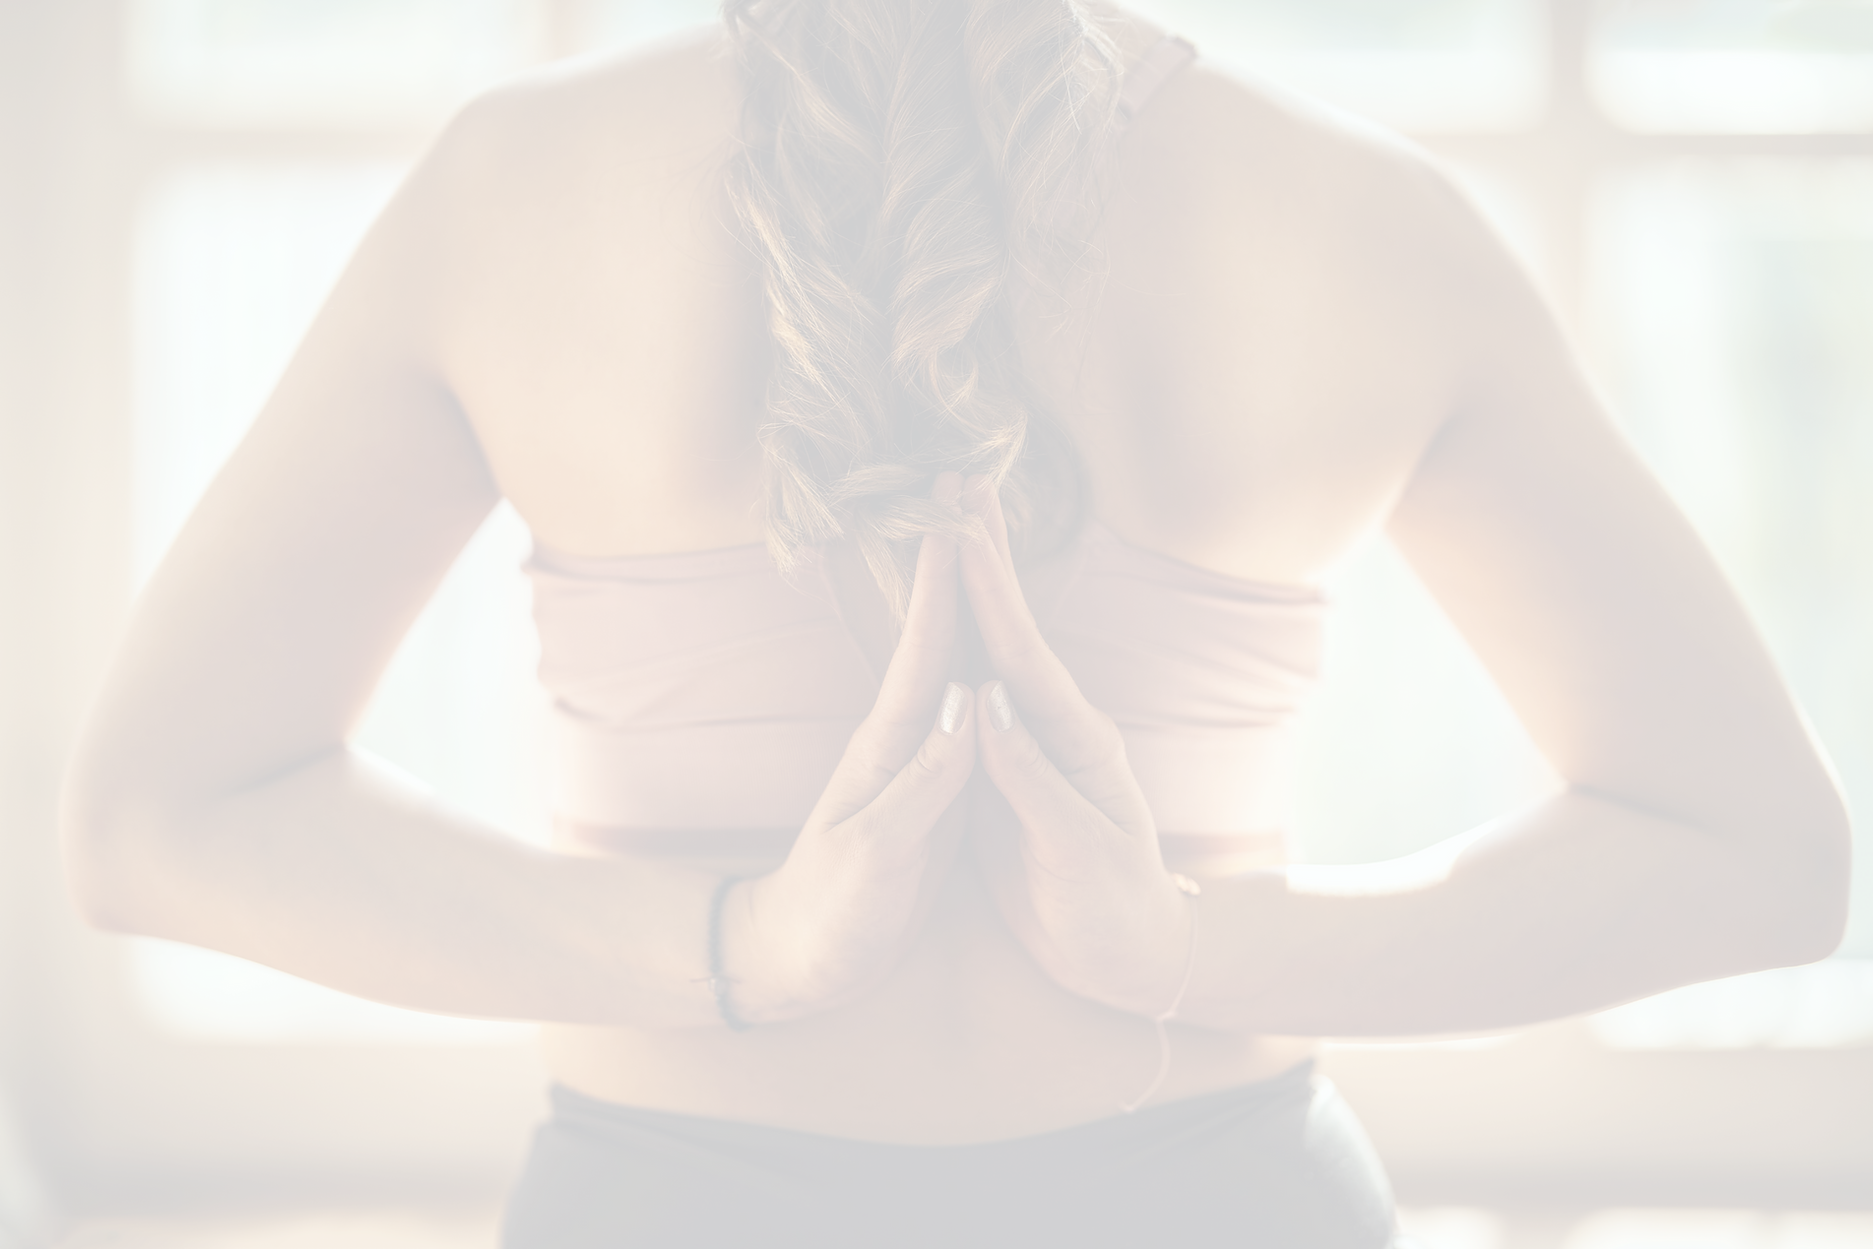 yoga-part-of-her-daily-routine-7B82HCY_e